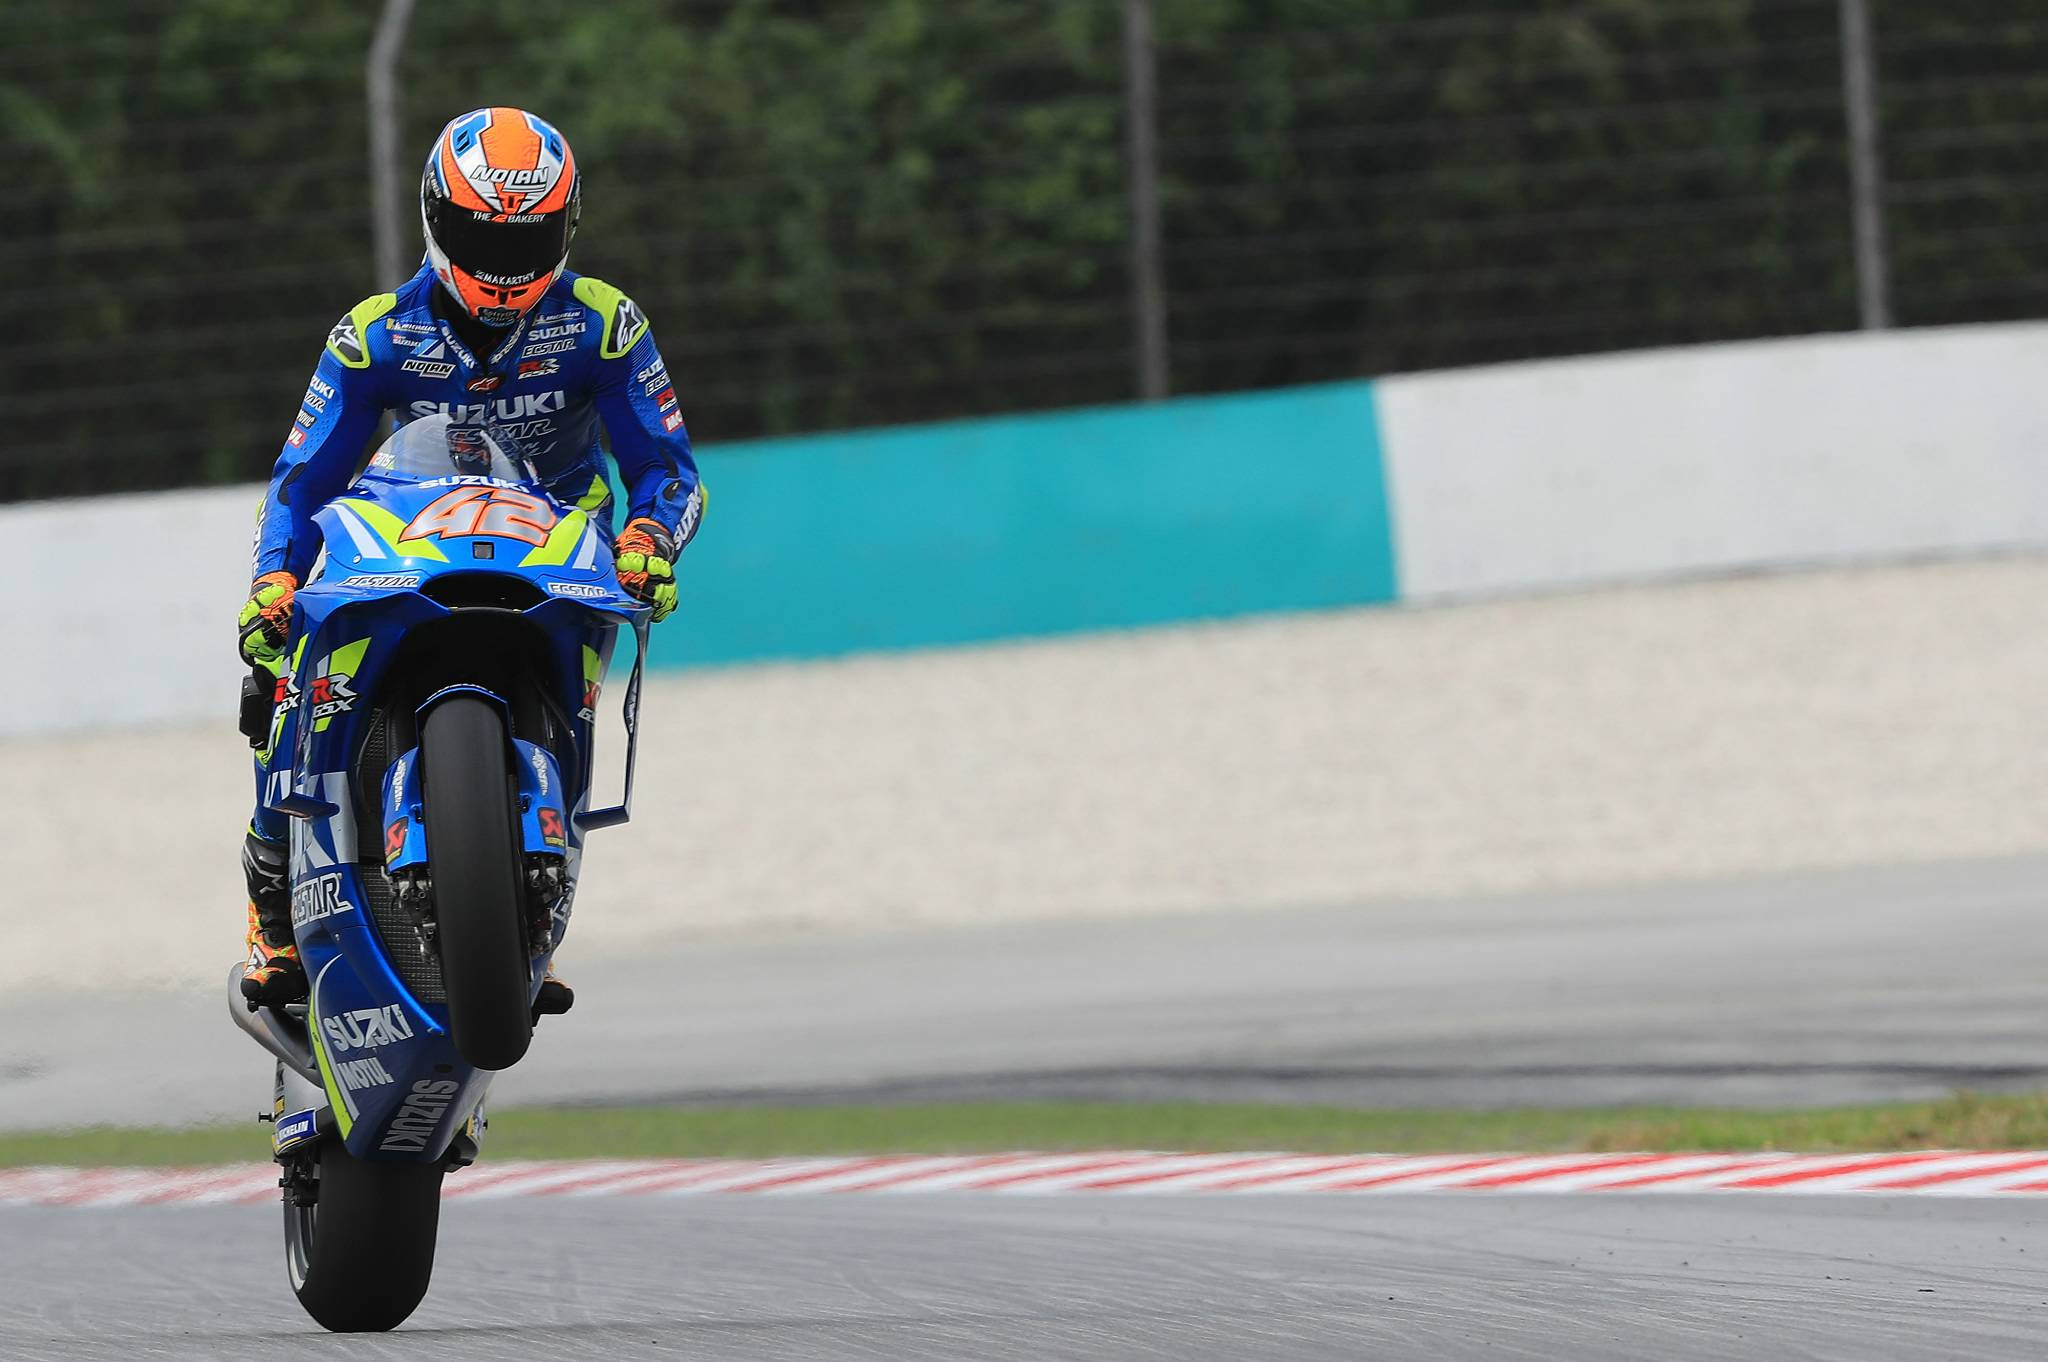 On Fire Rins Powers To The Front At Sepang Visordown